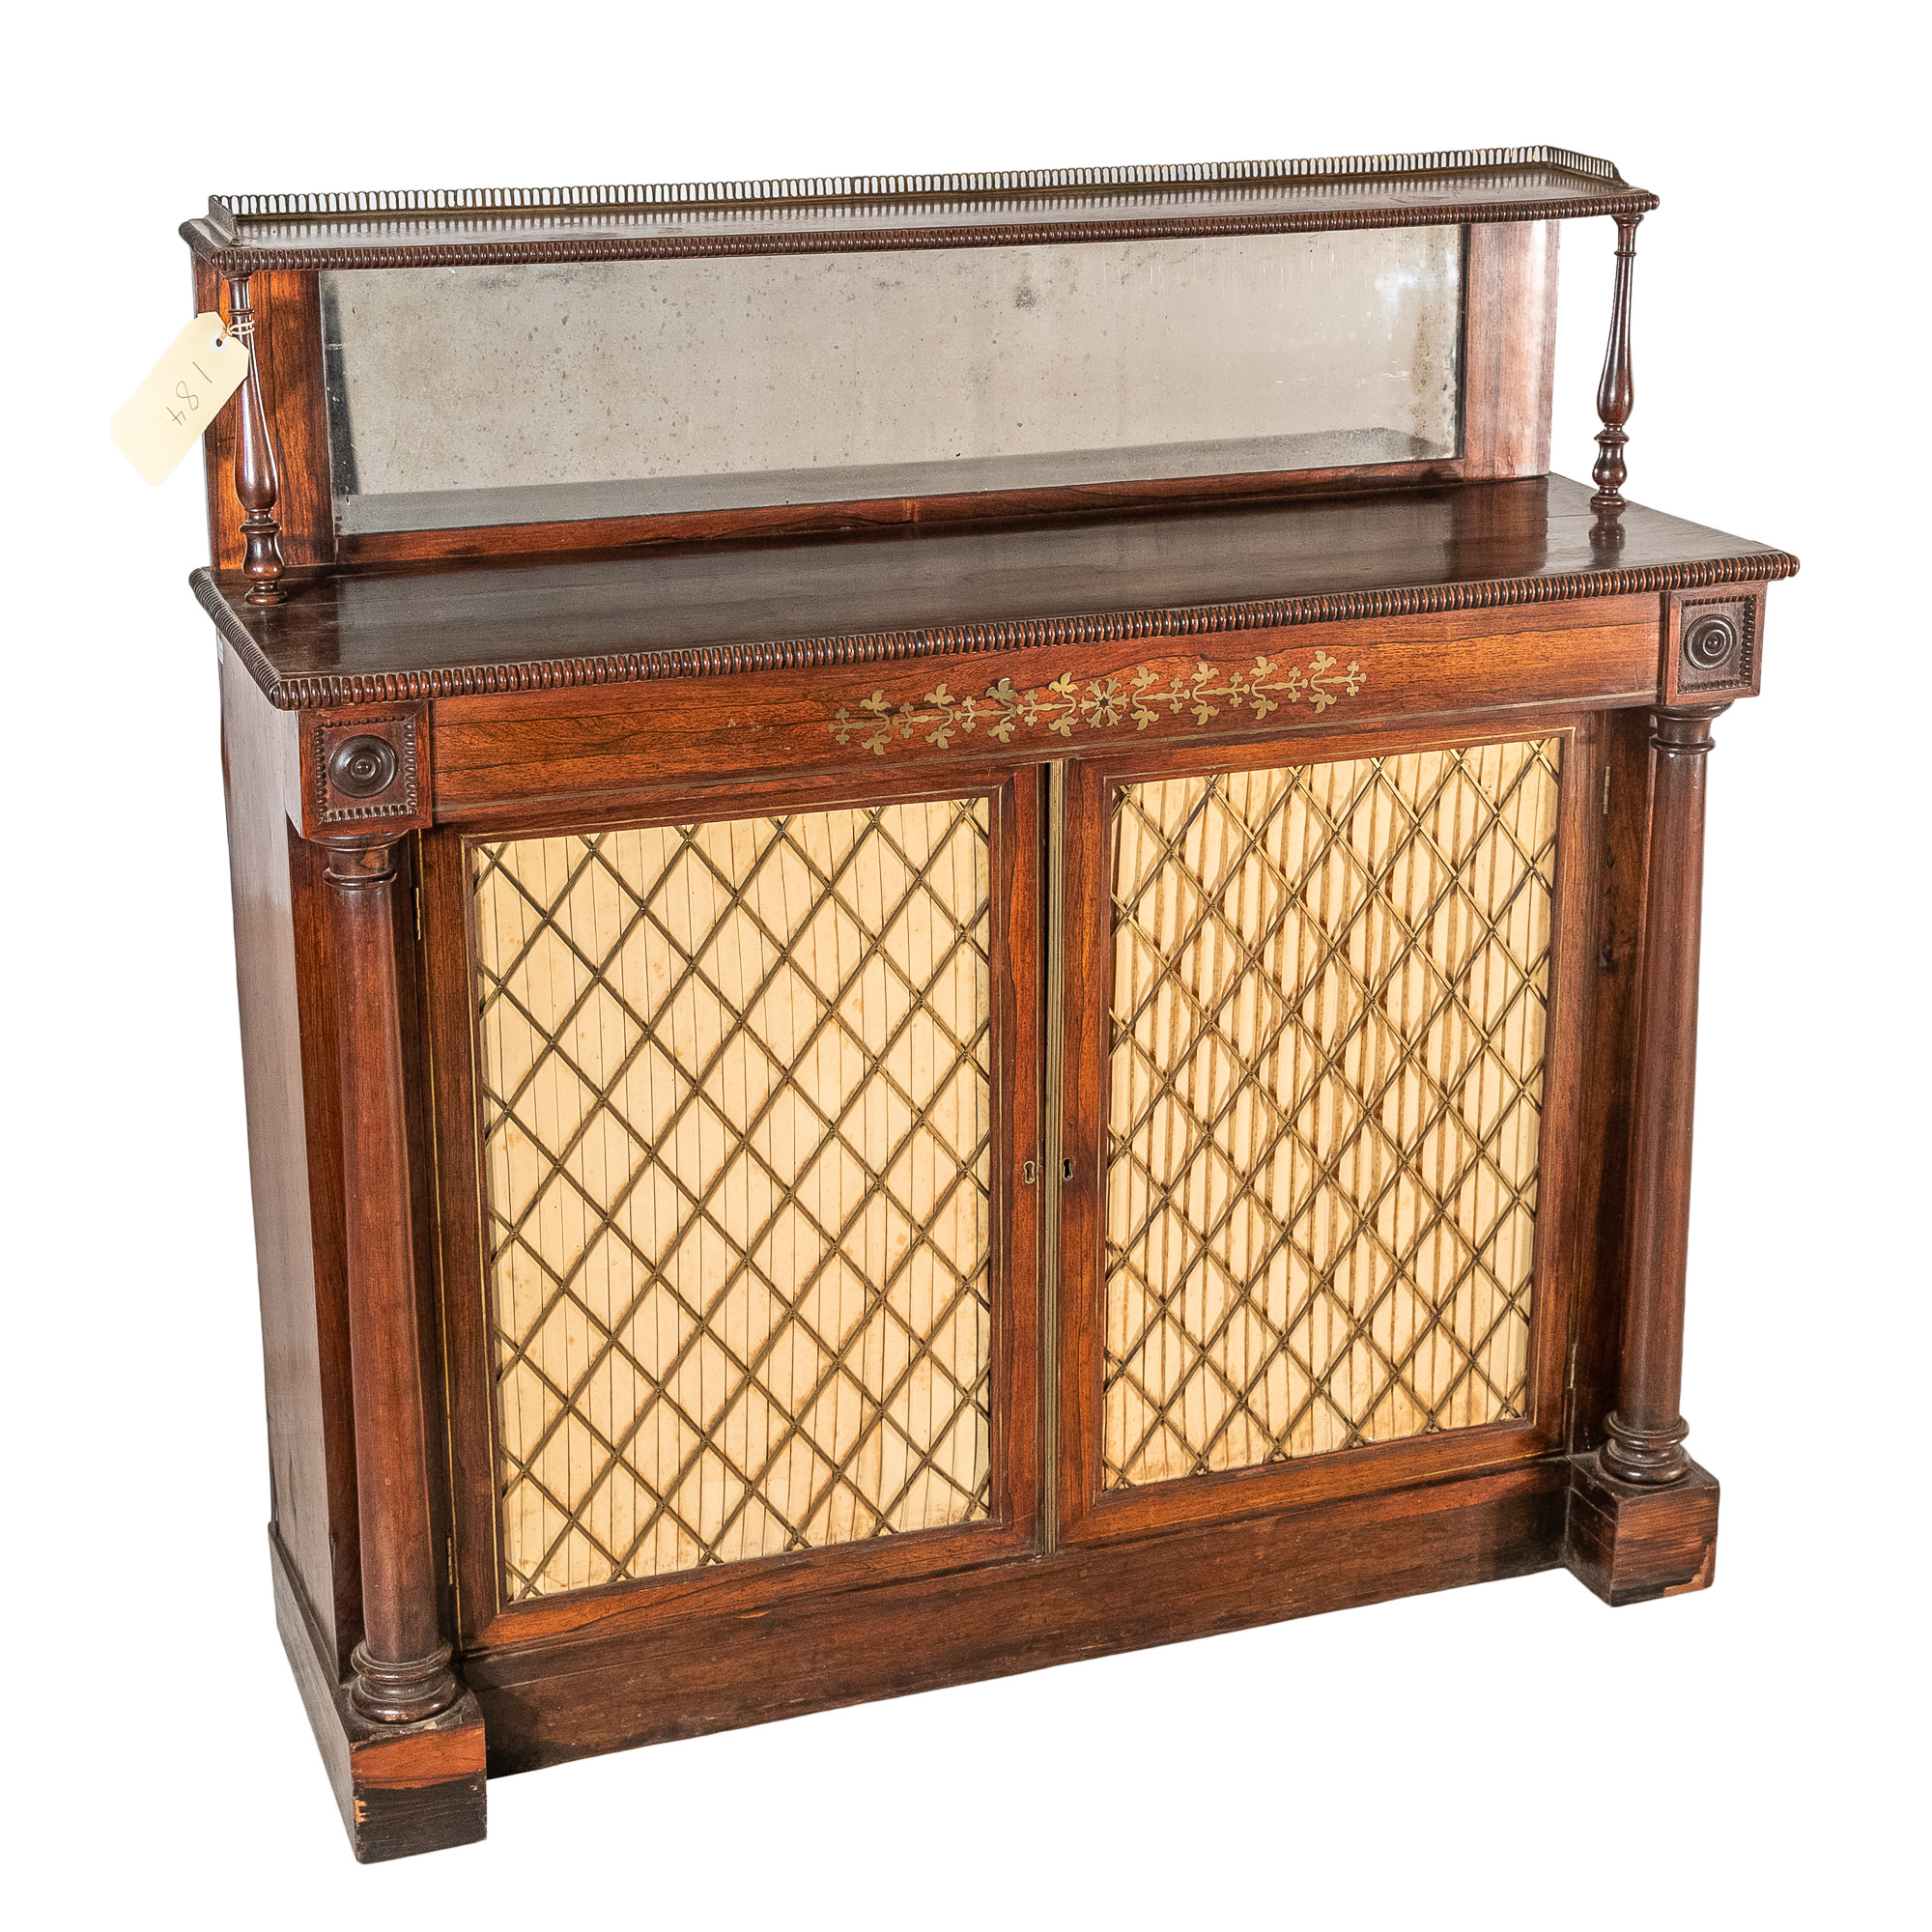 'Late Regency Brass Inlaid Rosewood Chiffonier with Brass Gallery Doors and Pleated Satin Drapes Circa 1830'